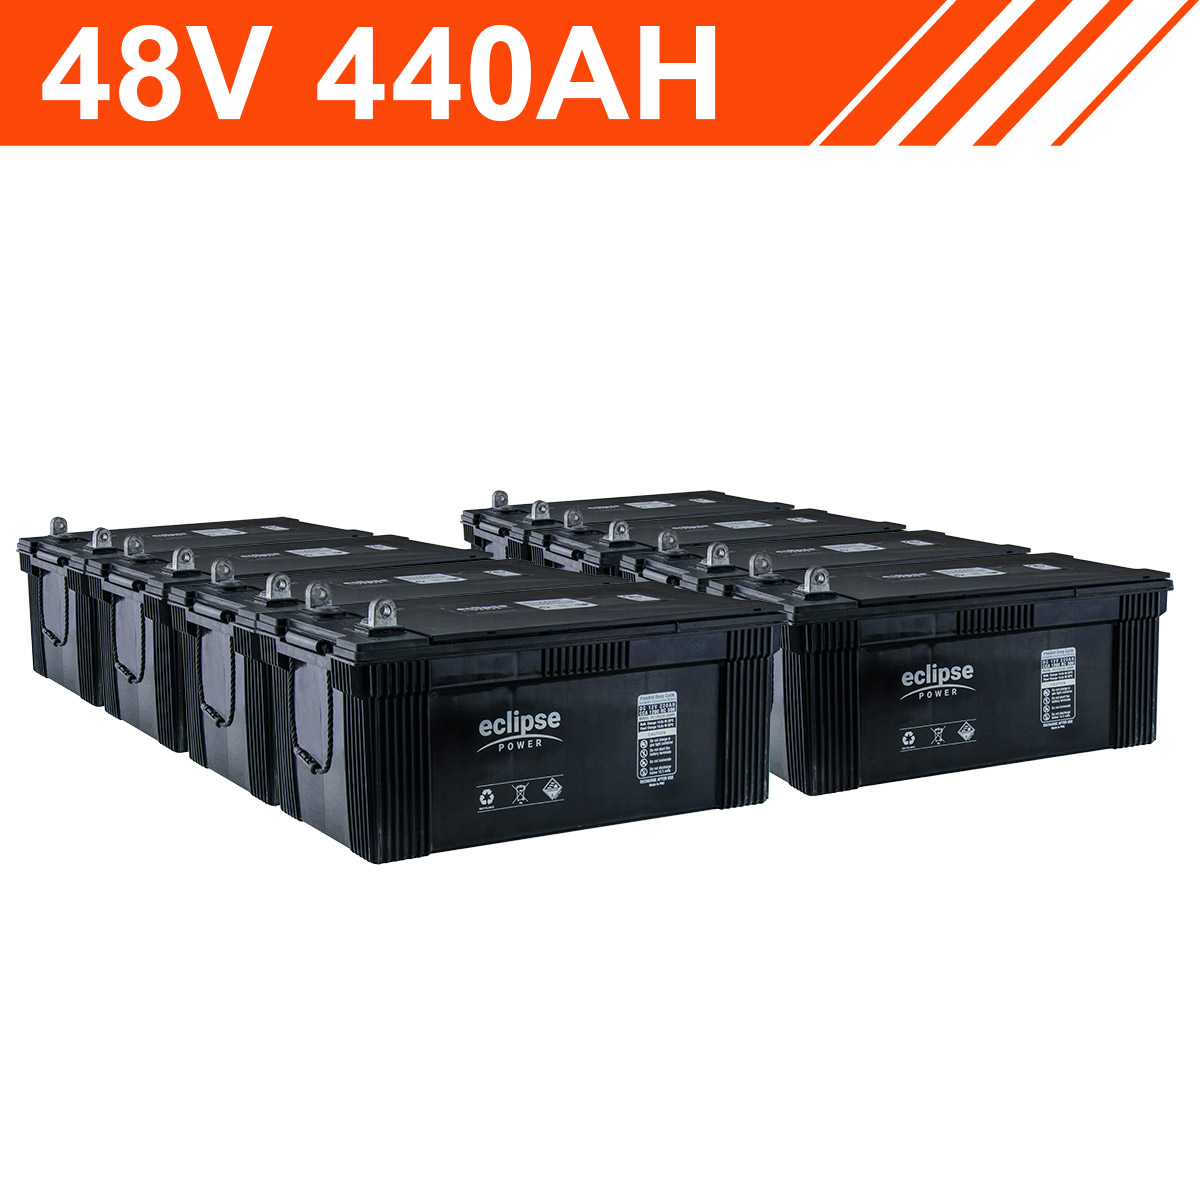 48v 440ah Flooded Deep Cycle Battery Bank